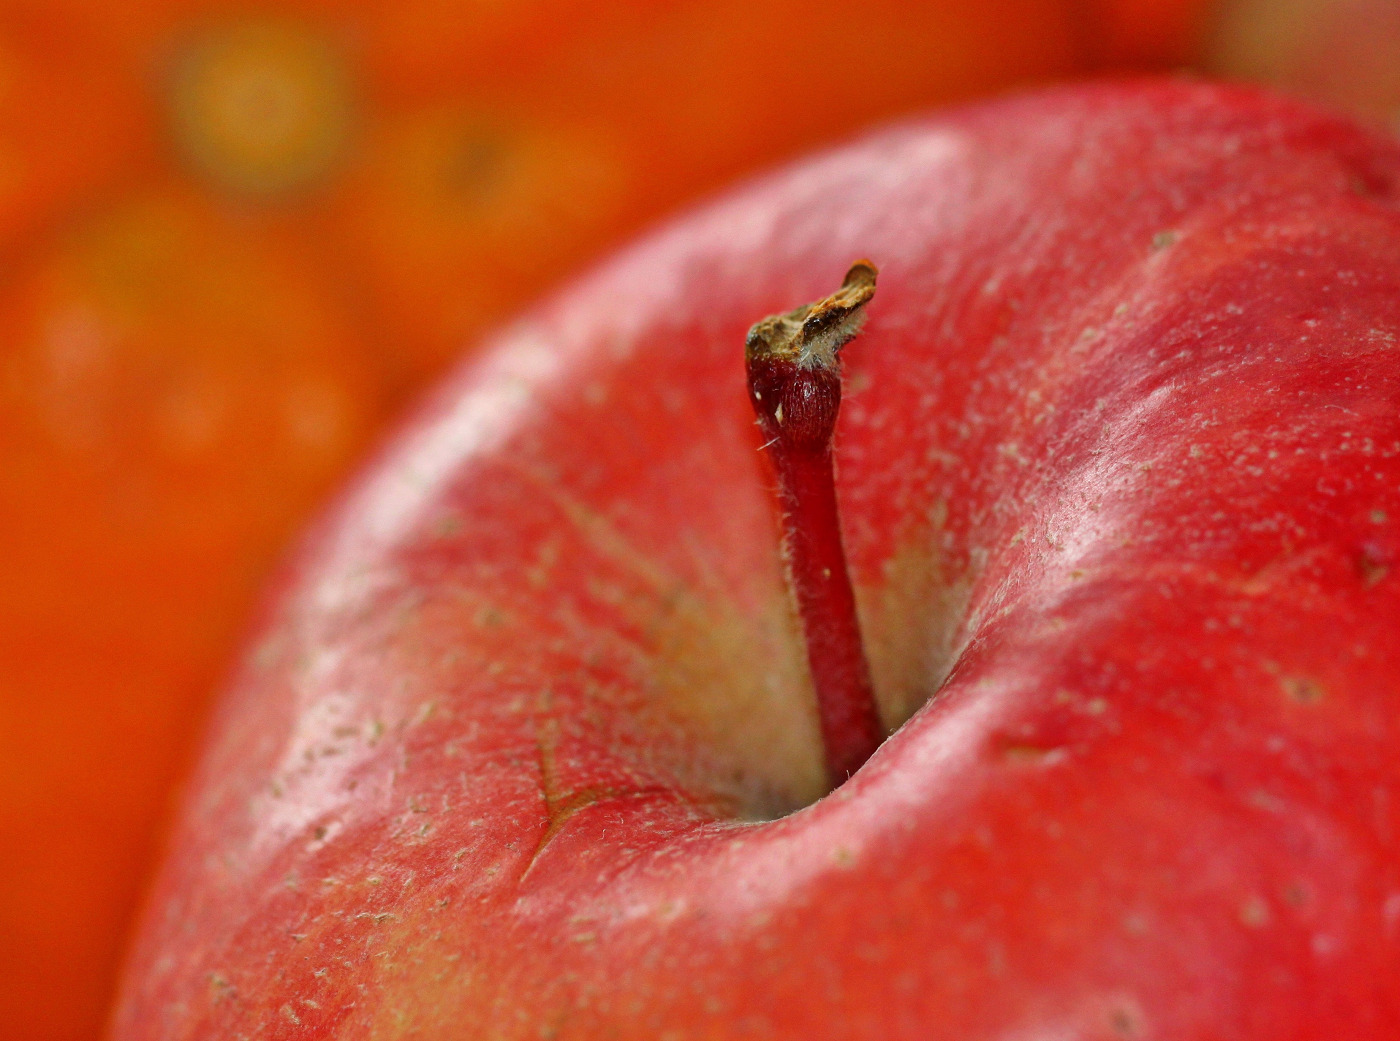 An apple a day keeps the (bariatrics) doctor away